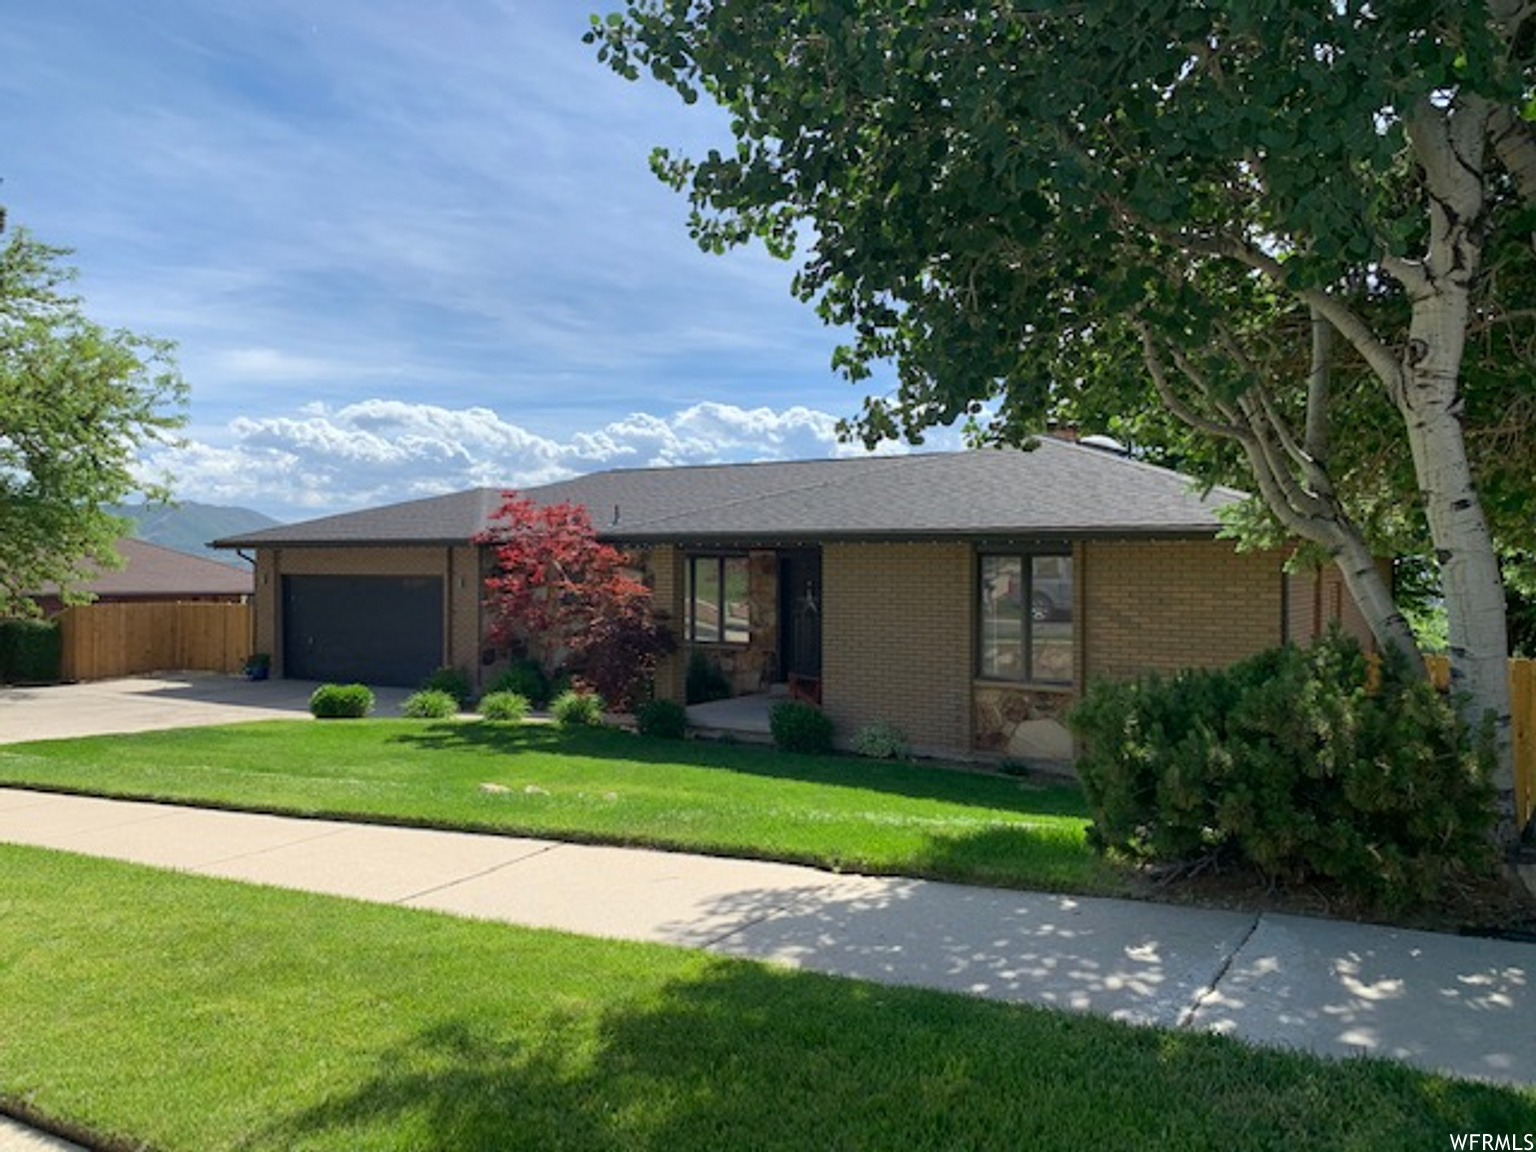 11670 S HIDDEN VALLEY BLVD, Sandy UT 84092